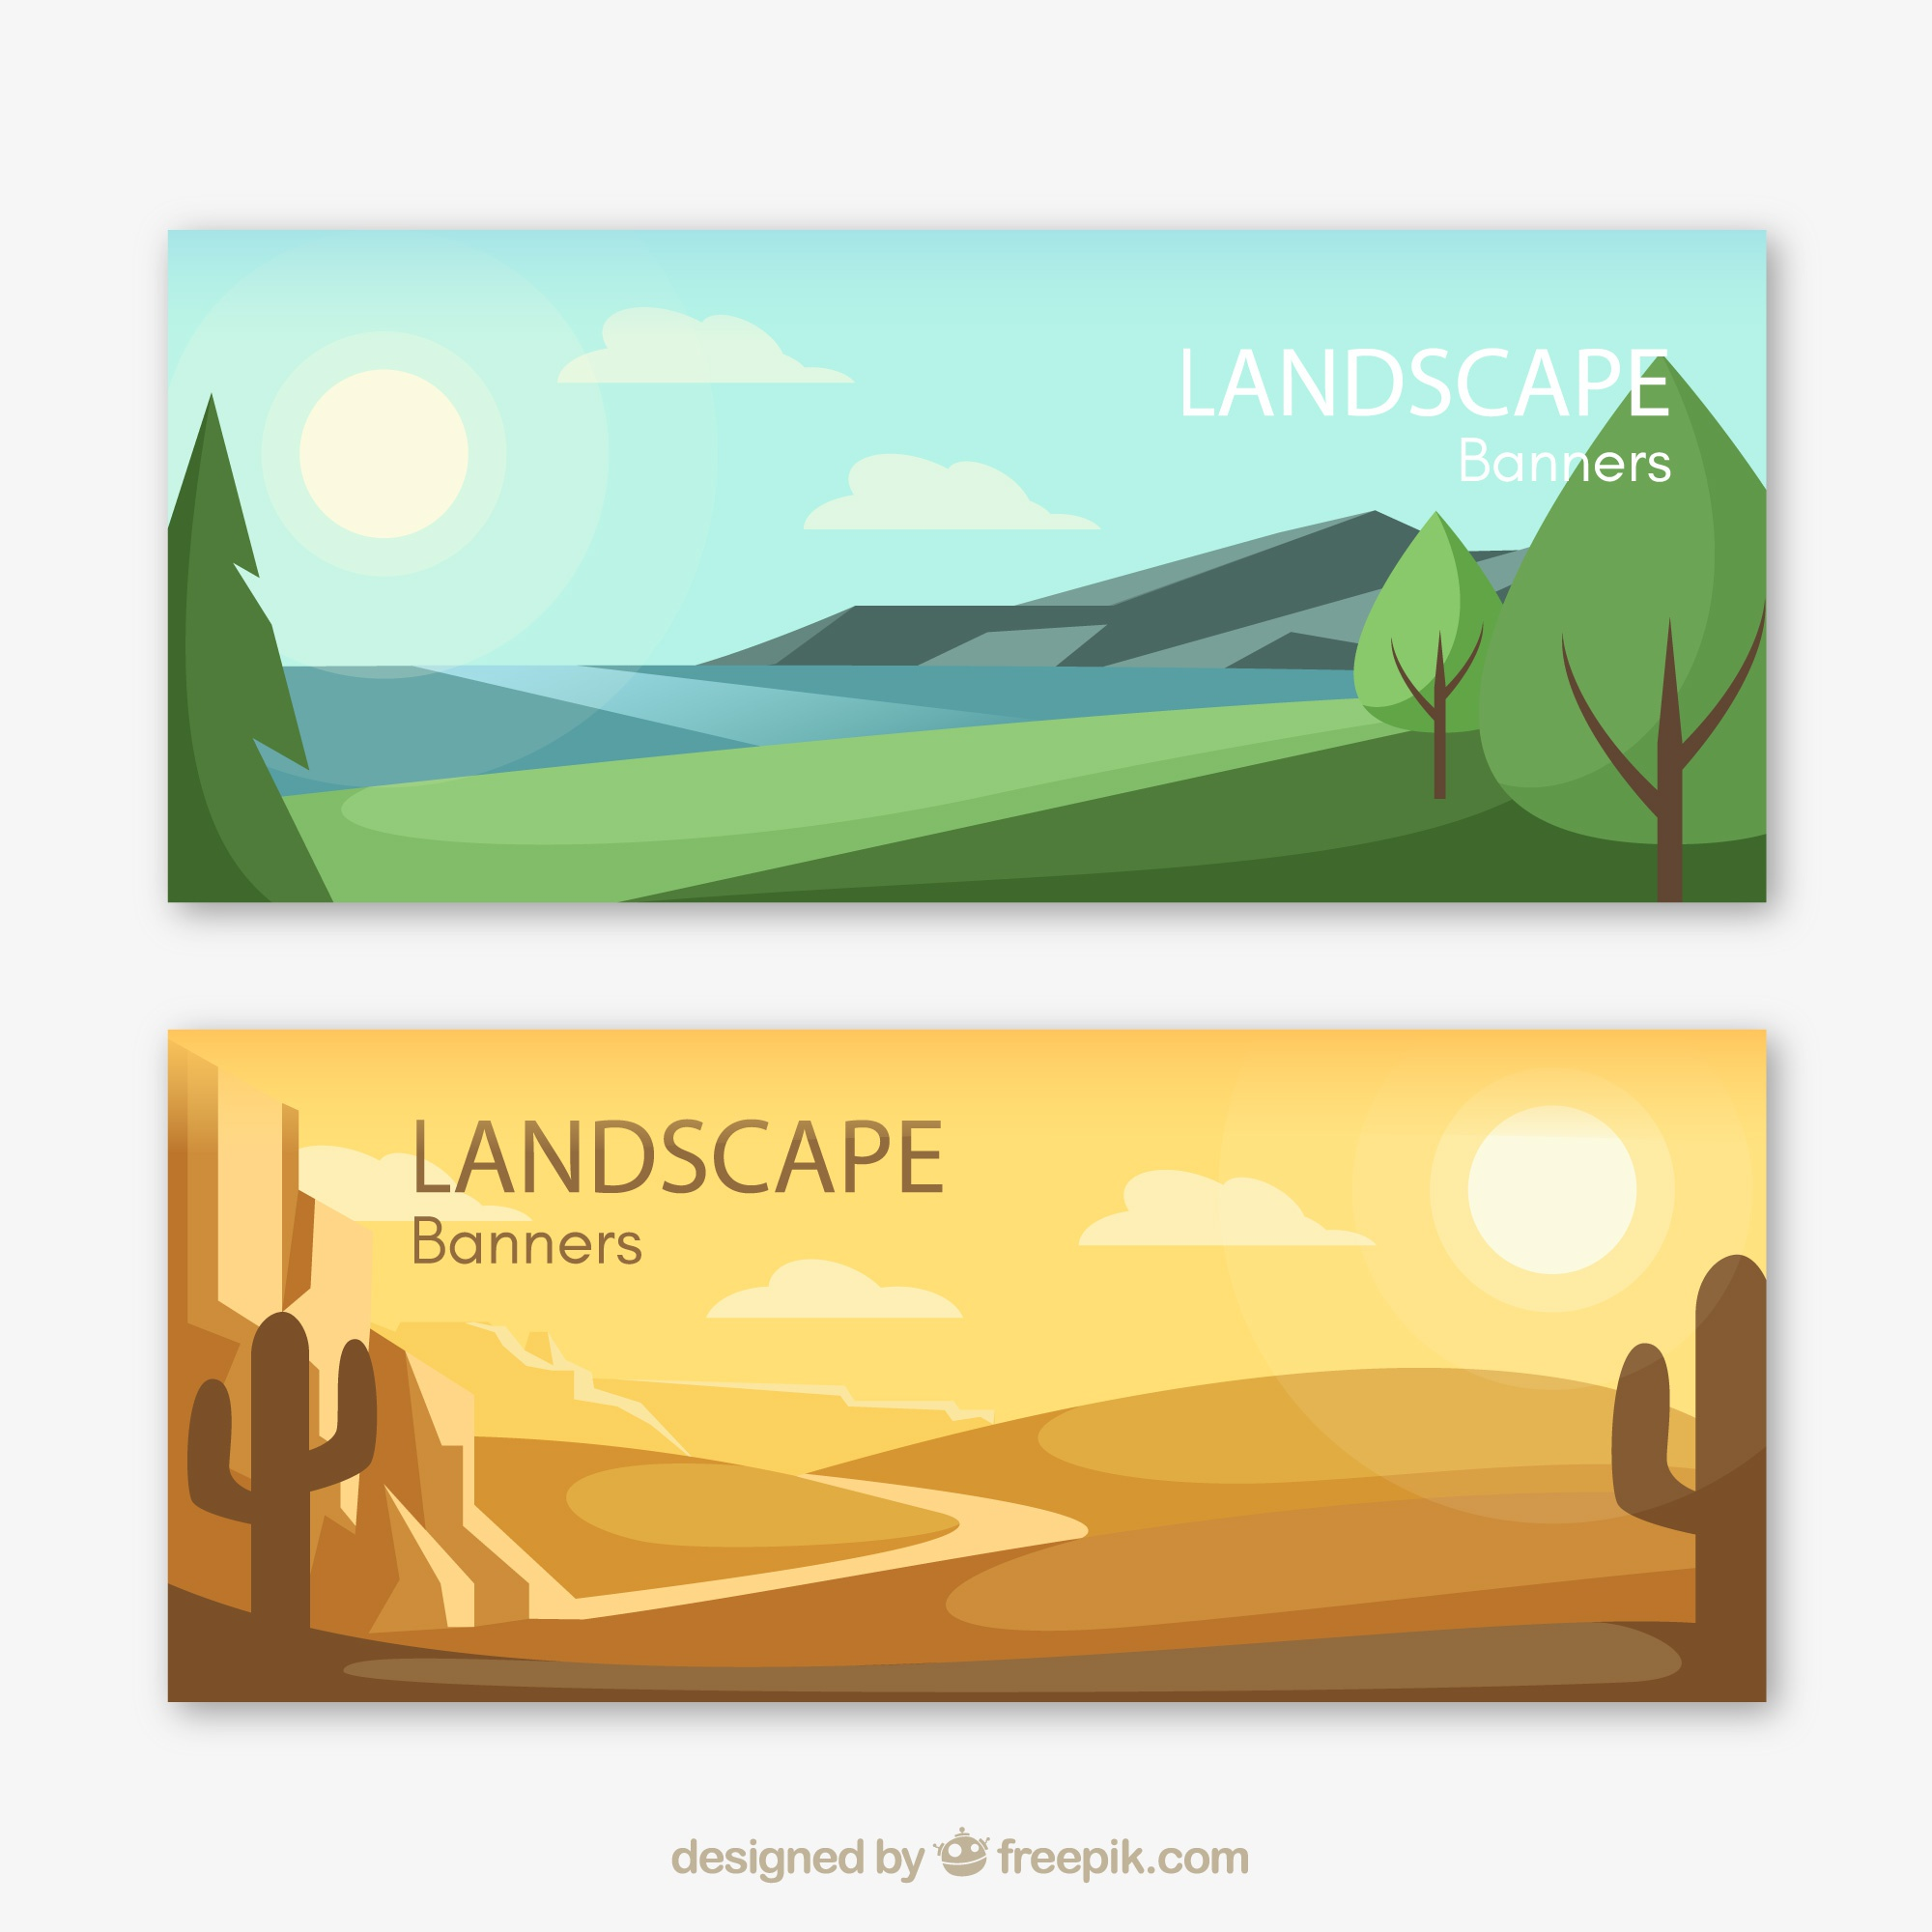 Banners of beautiful landscapes